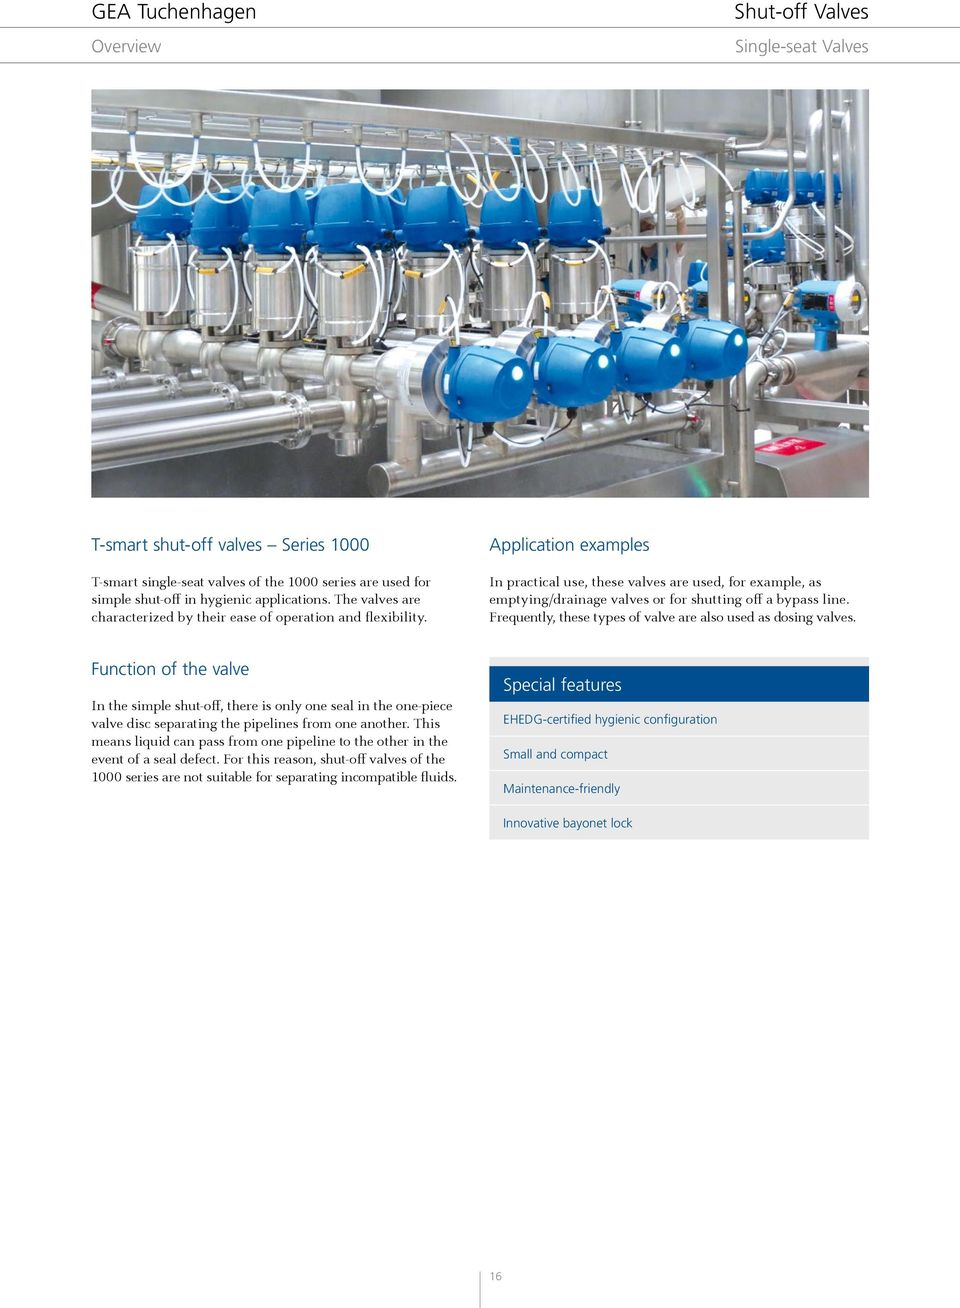 hight resolution of application examples in practical use these valves are used for example as emptying